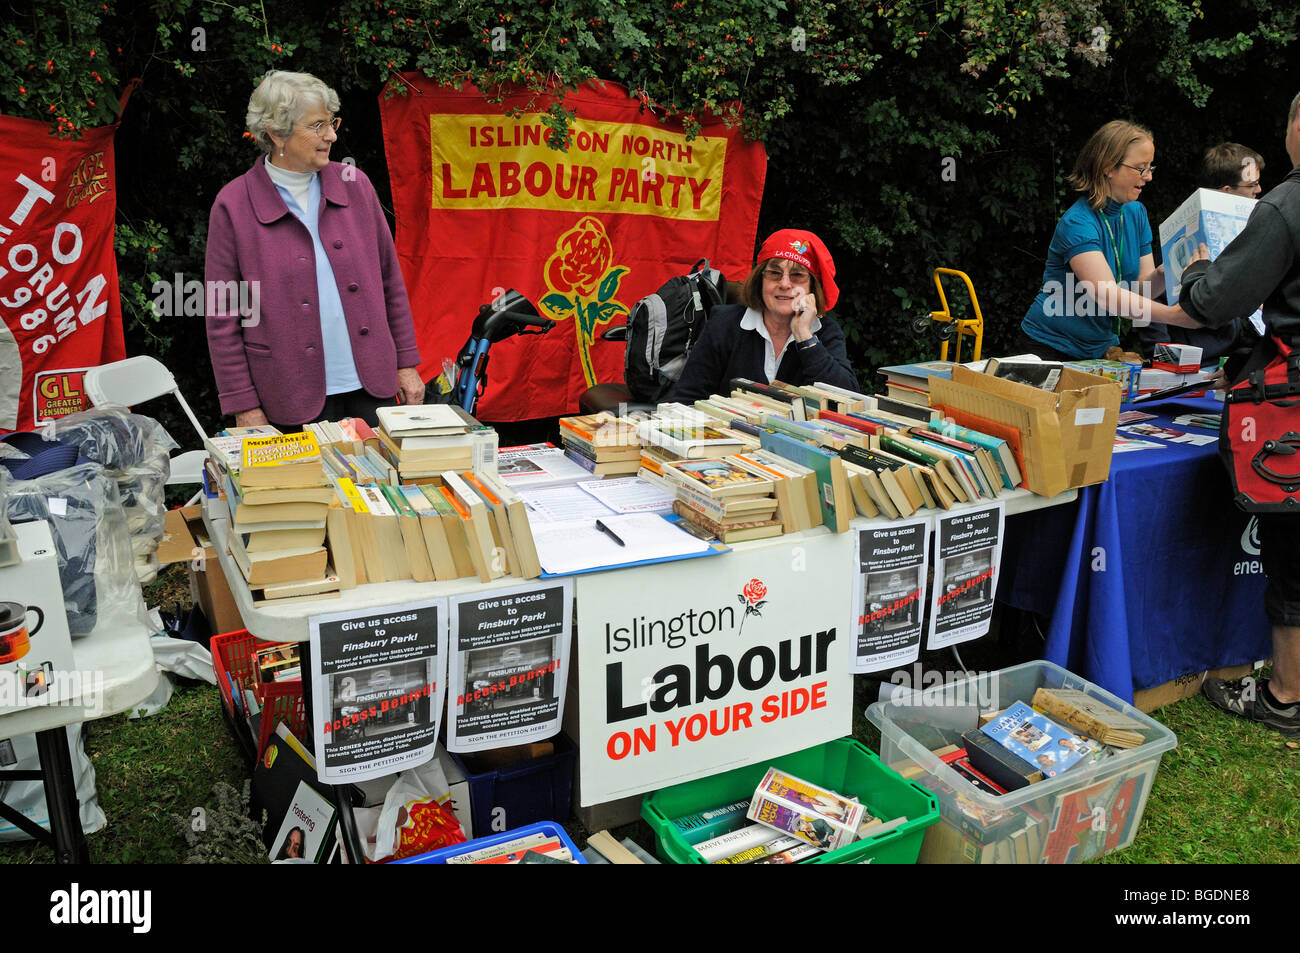 Islington North Labour Party Stall at the Gillespie Park Festival Highbury London England UK - Stock Image